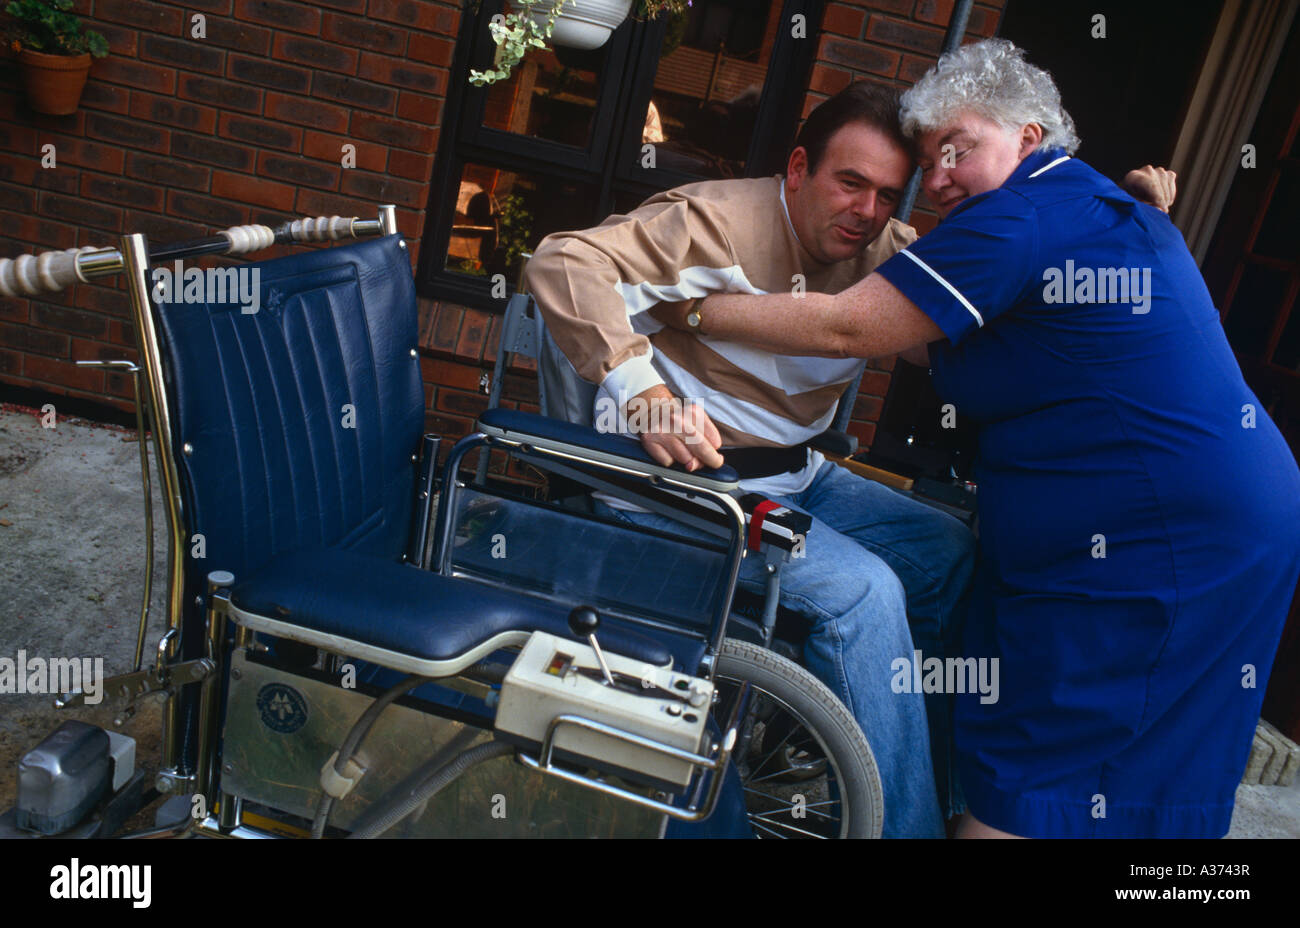 District Nurse helps disabled man into his wheelchair on a visit to his home in London UK - Stock Image